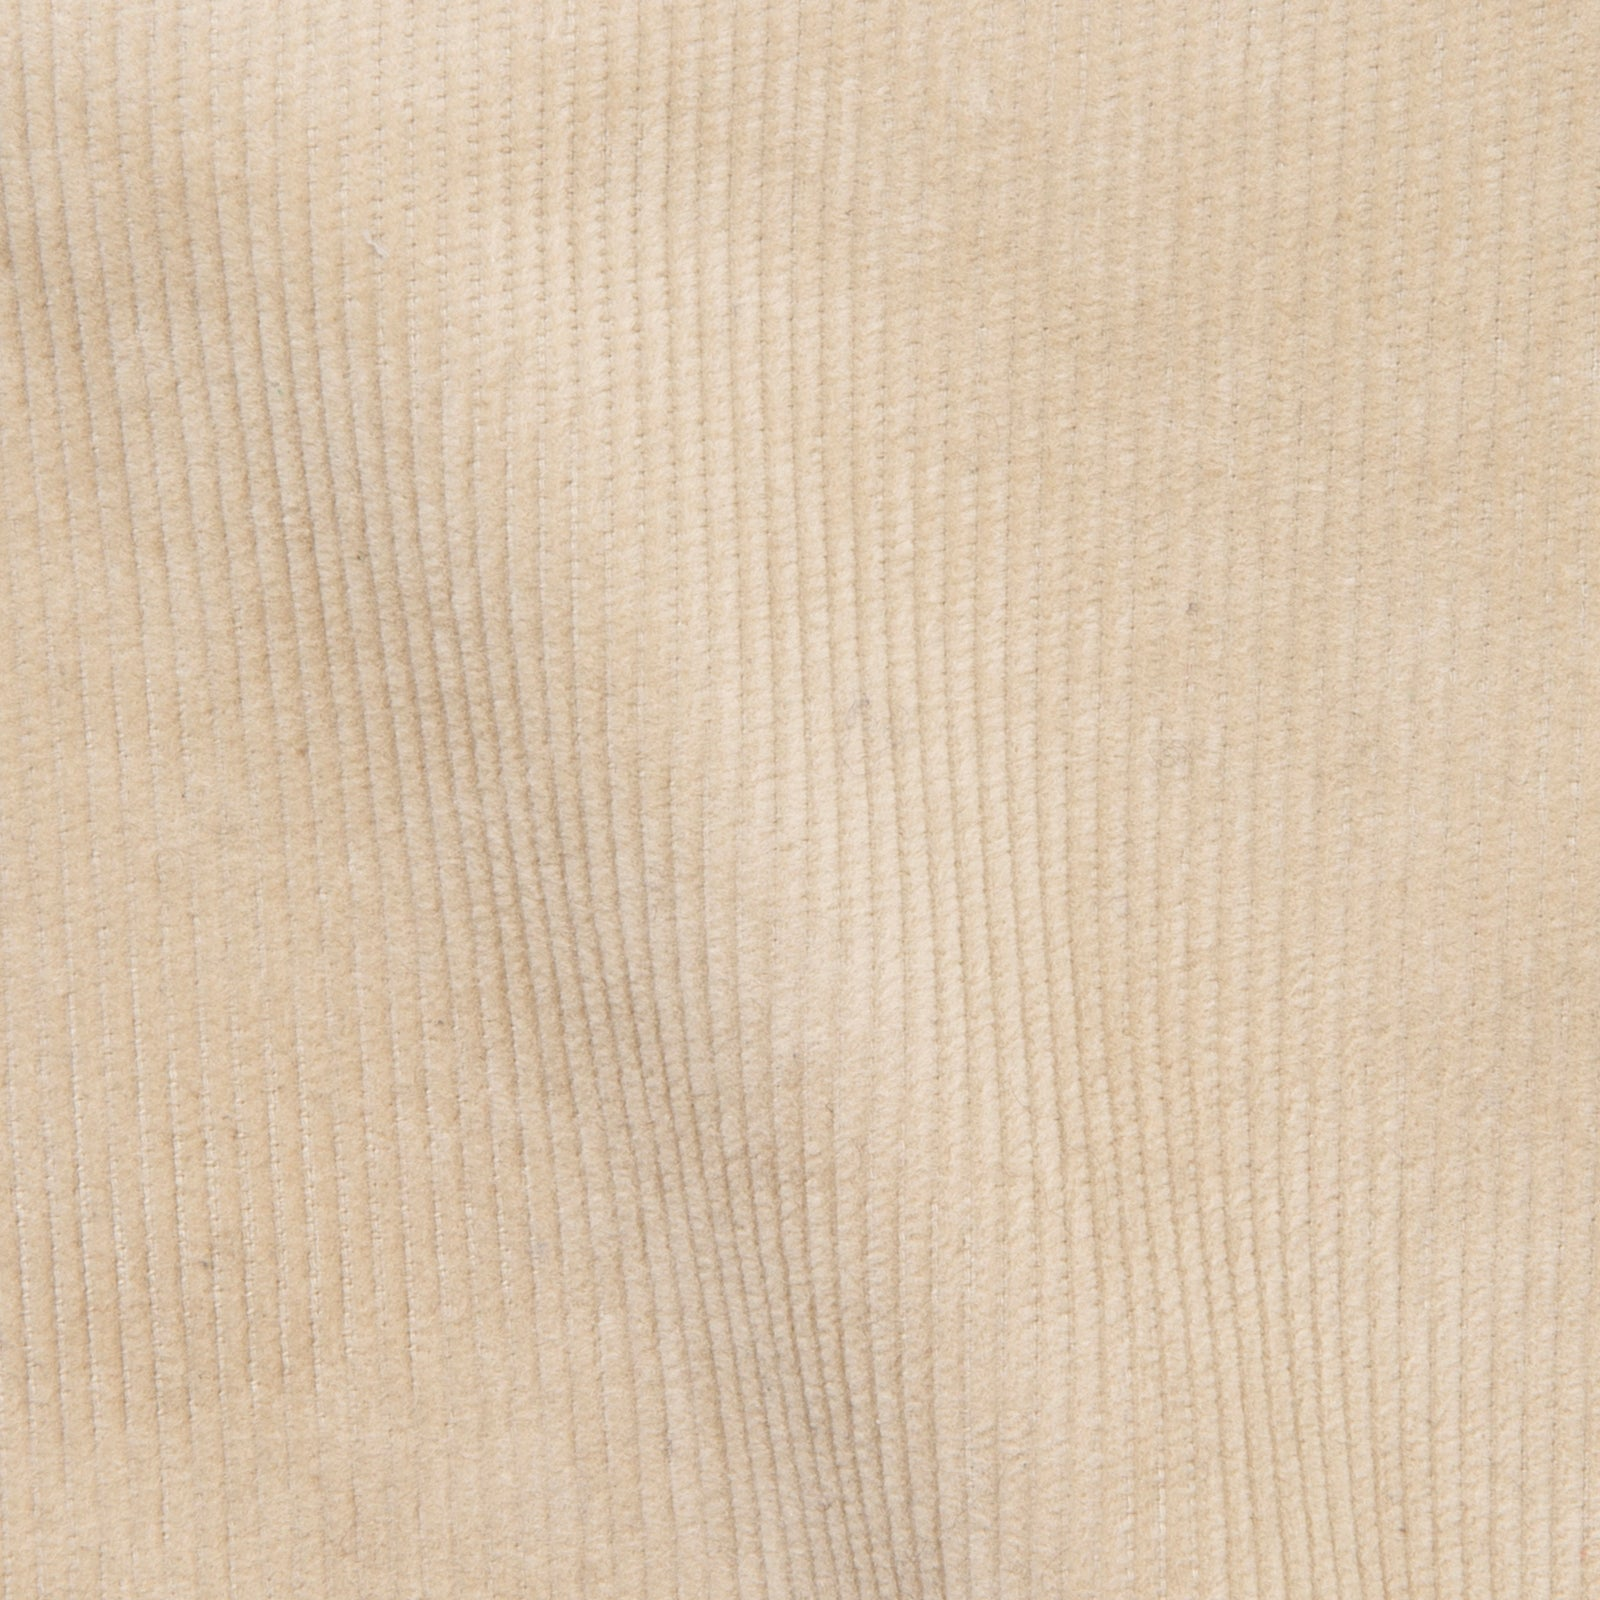 Cotton Needle Corduroy